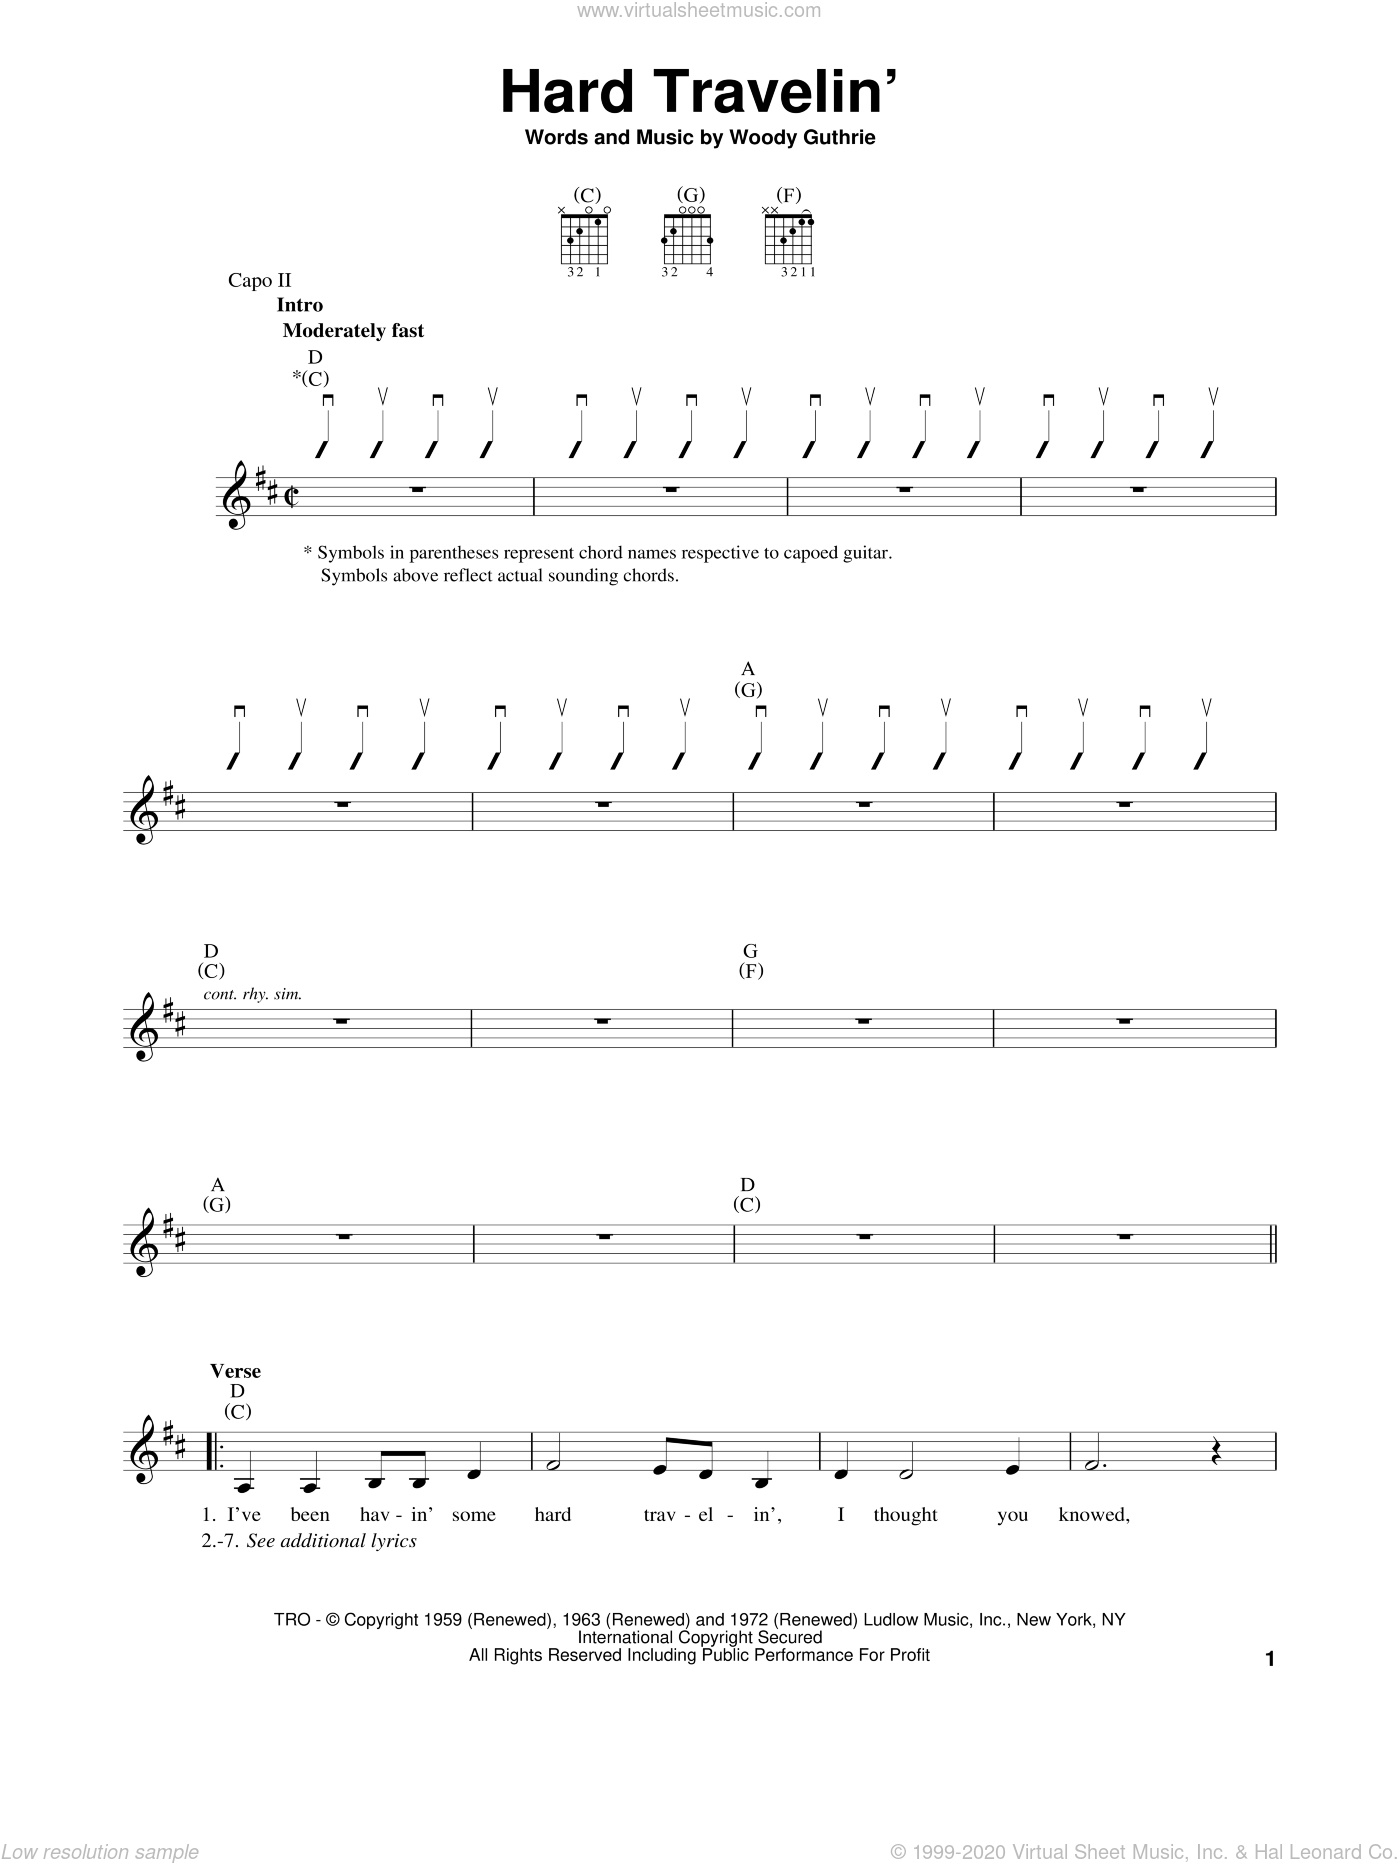 Hard Travelin' sheet music for guitar solo (chords) by Woody Guthrie